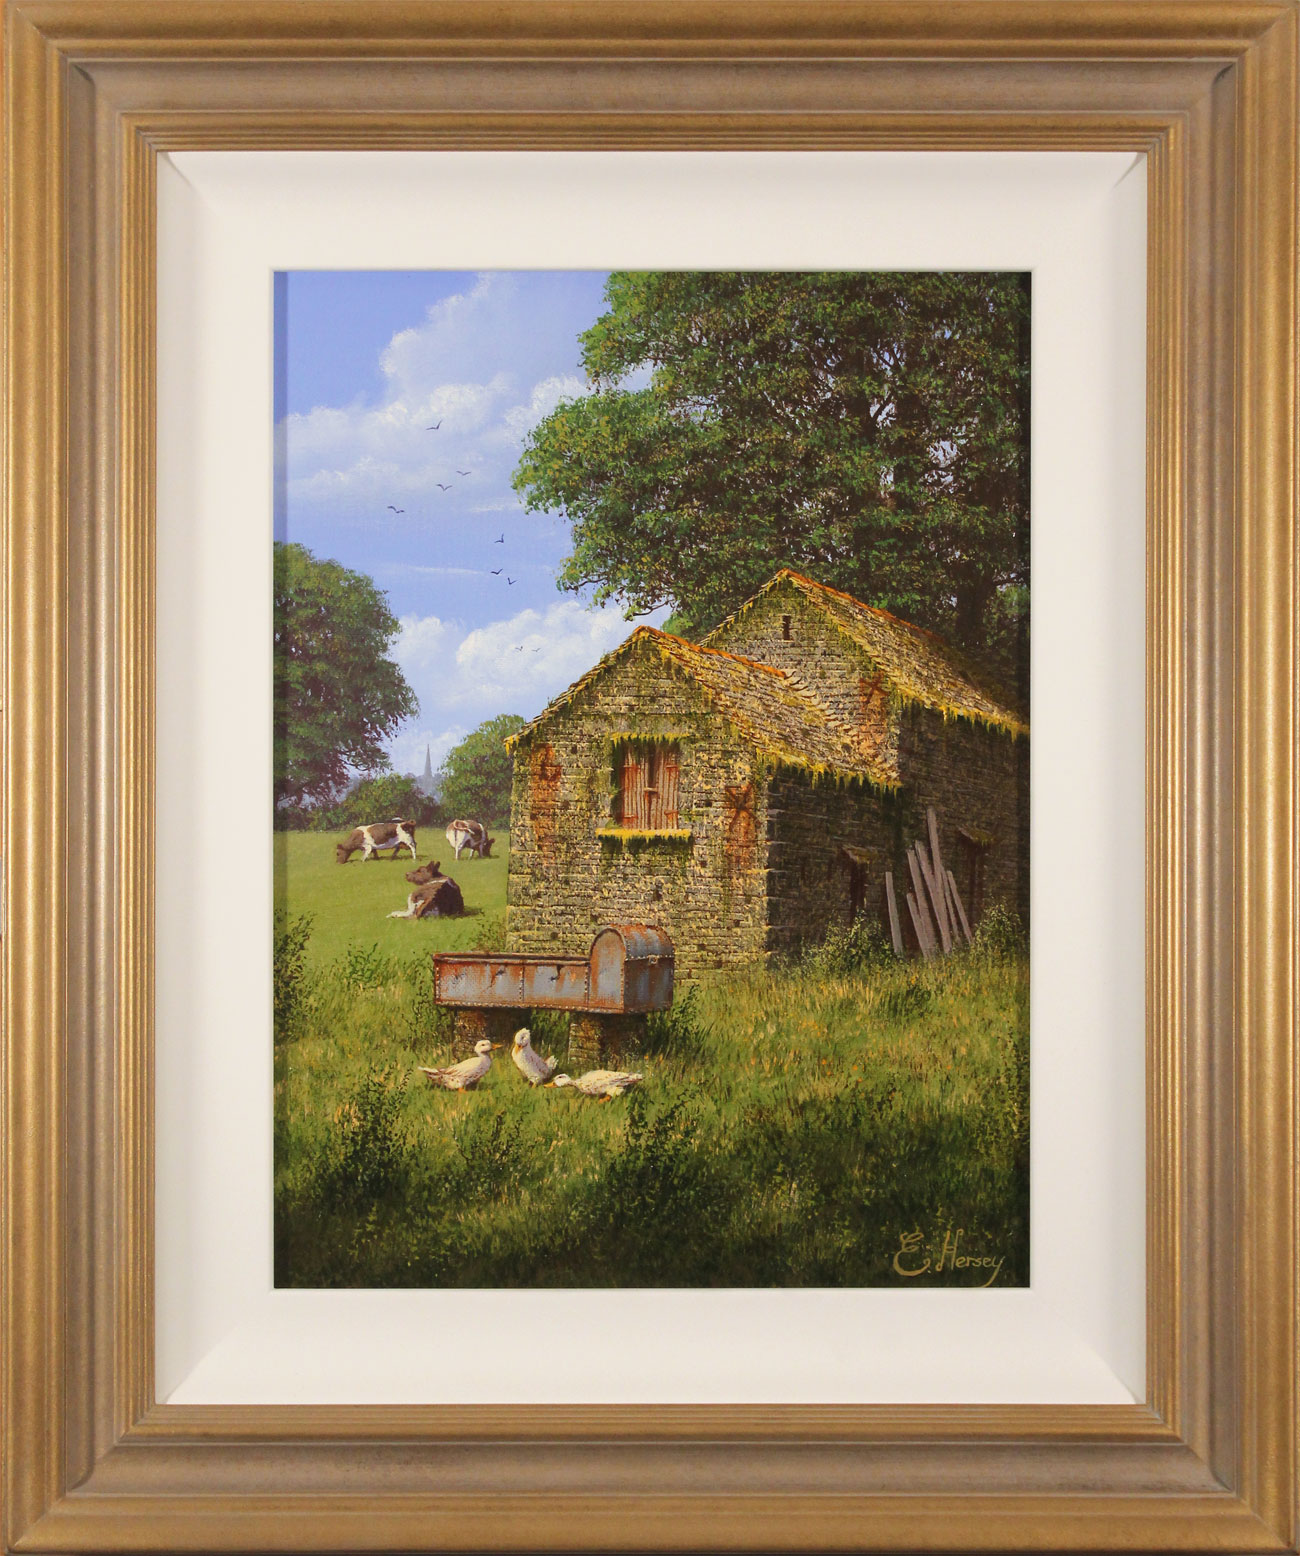 Edward Hersey, Original oil painting on canvas, Moment of Calm. Click to enlarge